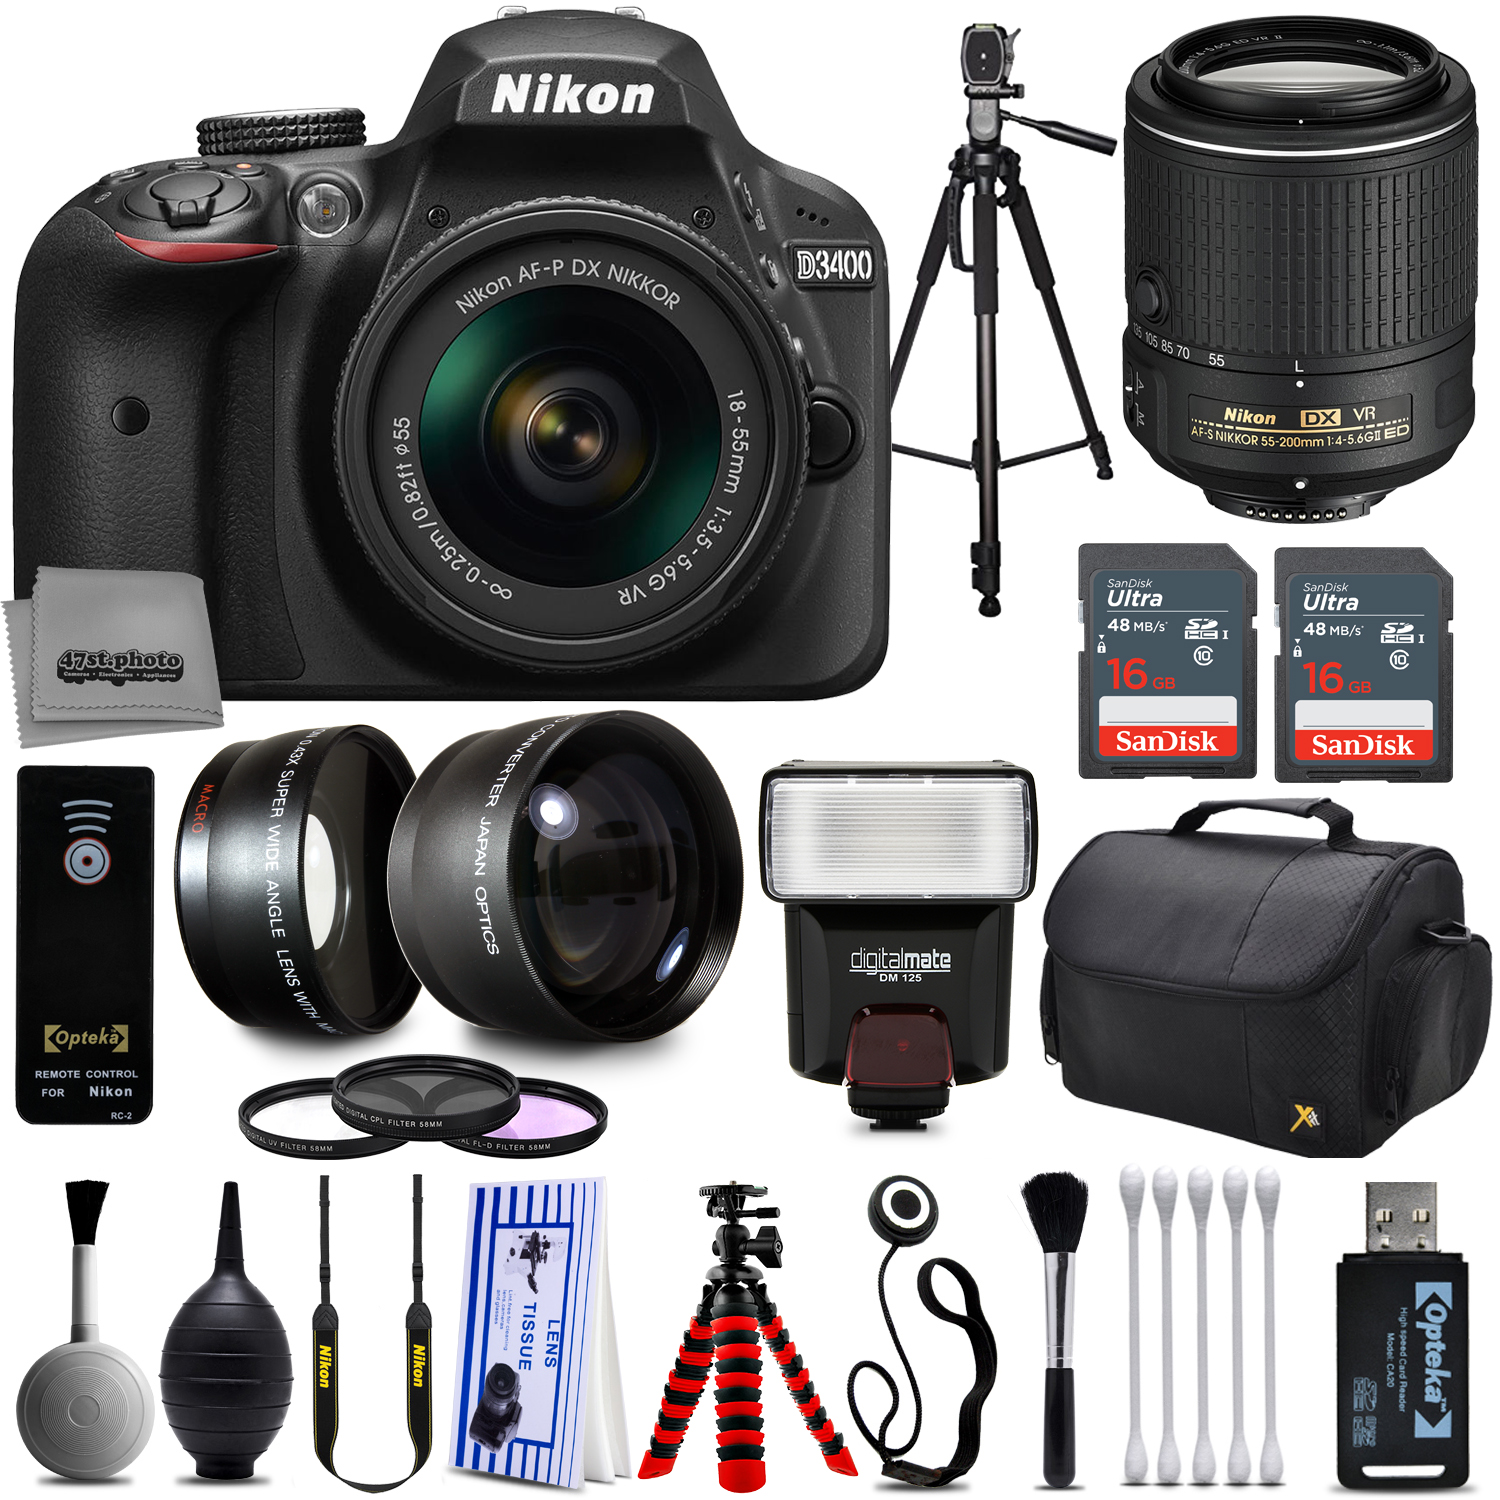 Nikon D3400 DSLR Camera + 18-55mm and 55-200mm AF-P DX VR...